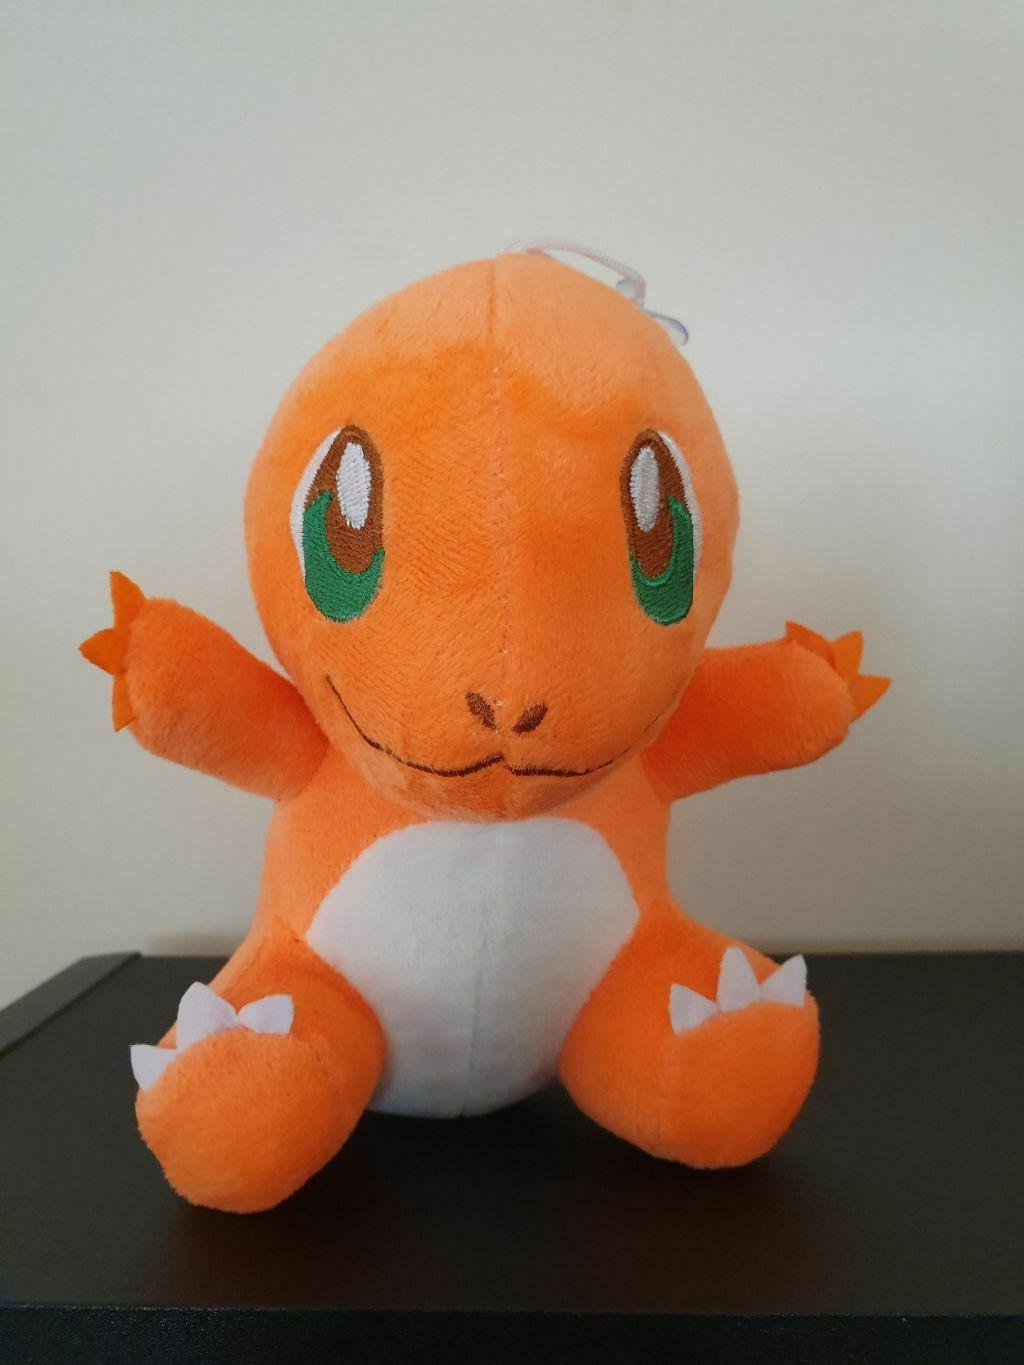 7 pokemon charmander plush soft toy stuffed